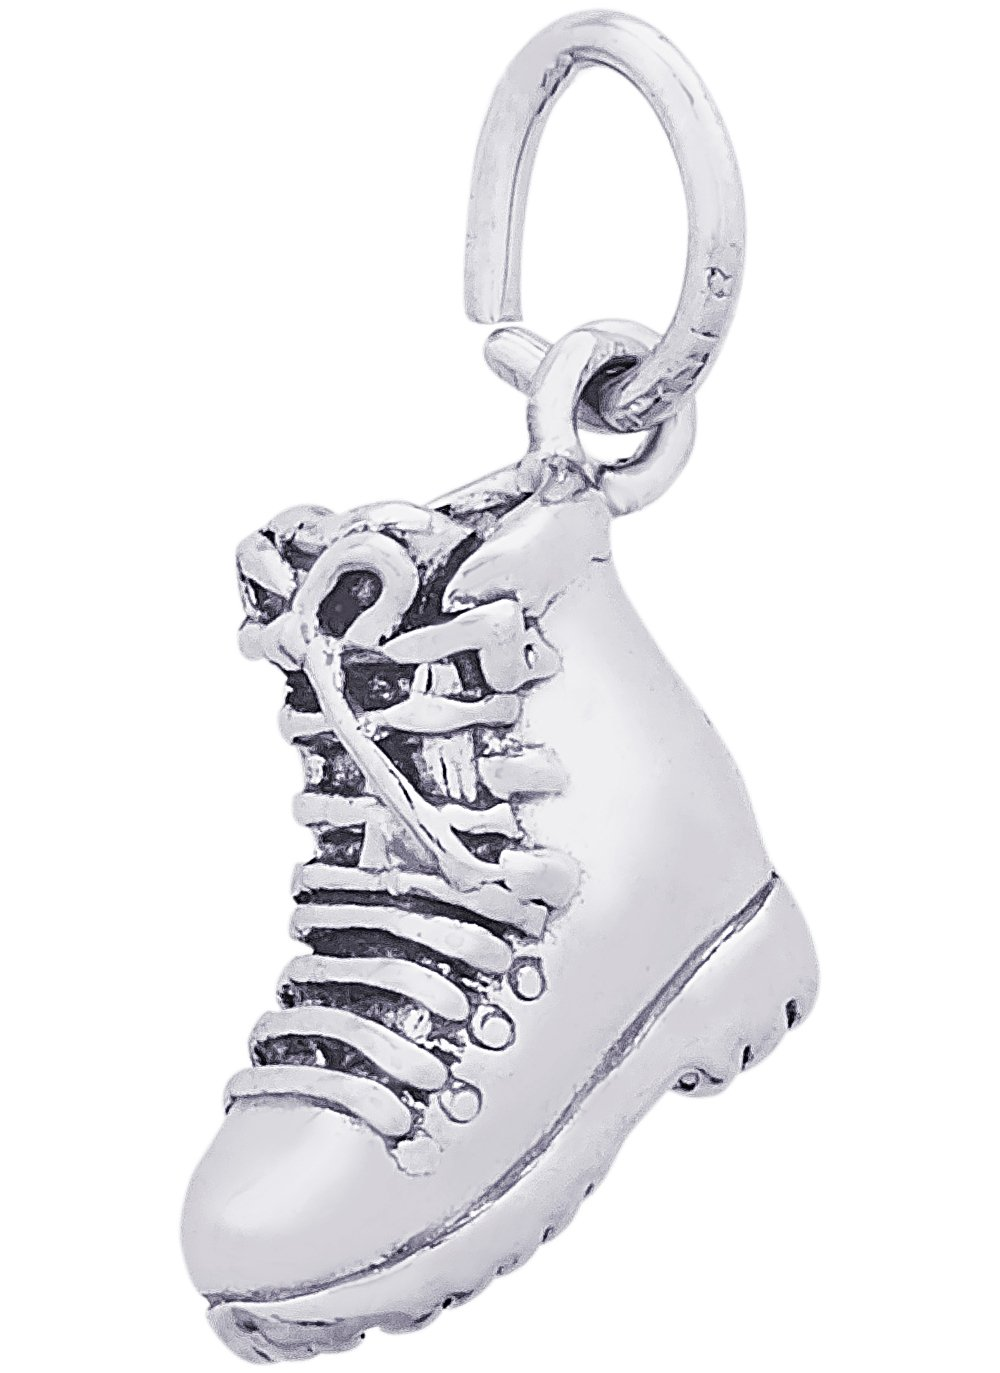 Rembrandt Charms Sterling Silver 3-D Hiking Boot Charm (11 x 12 mm)